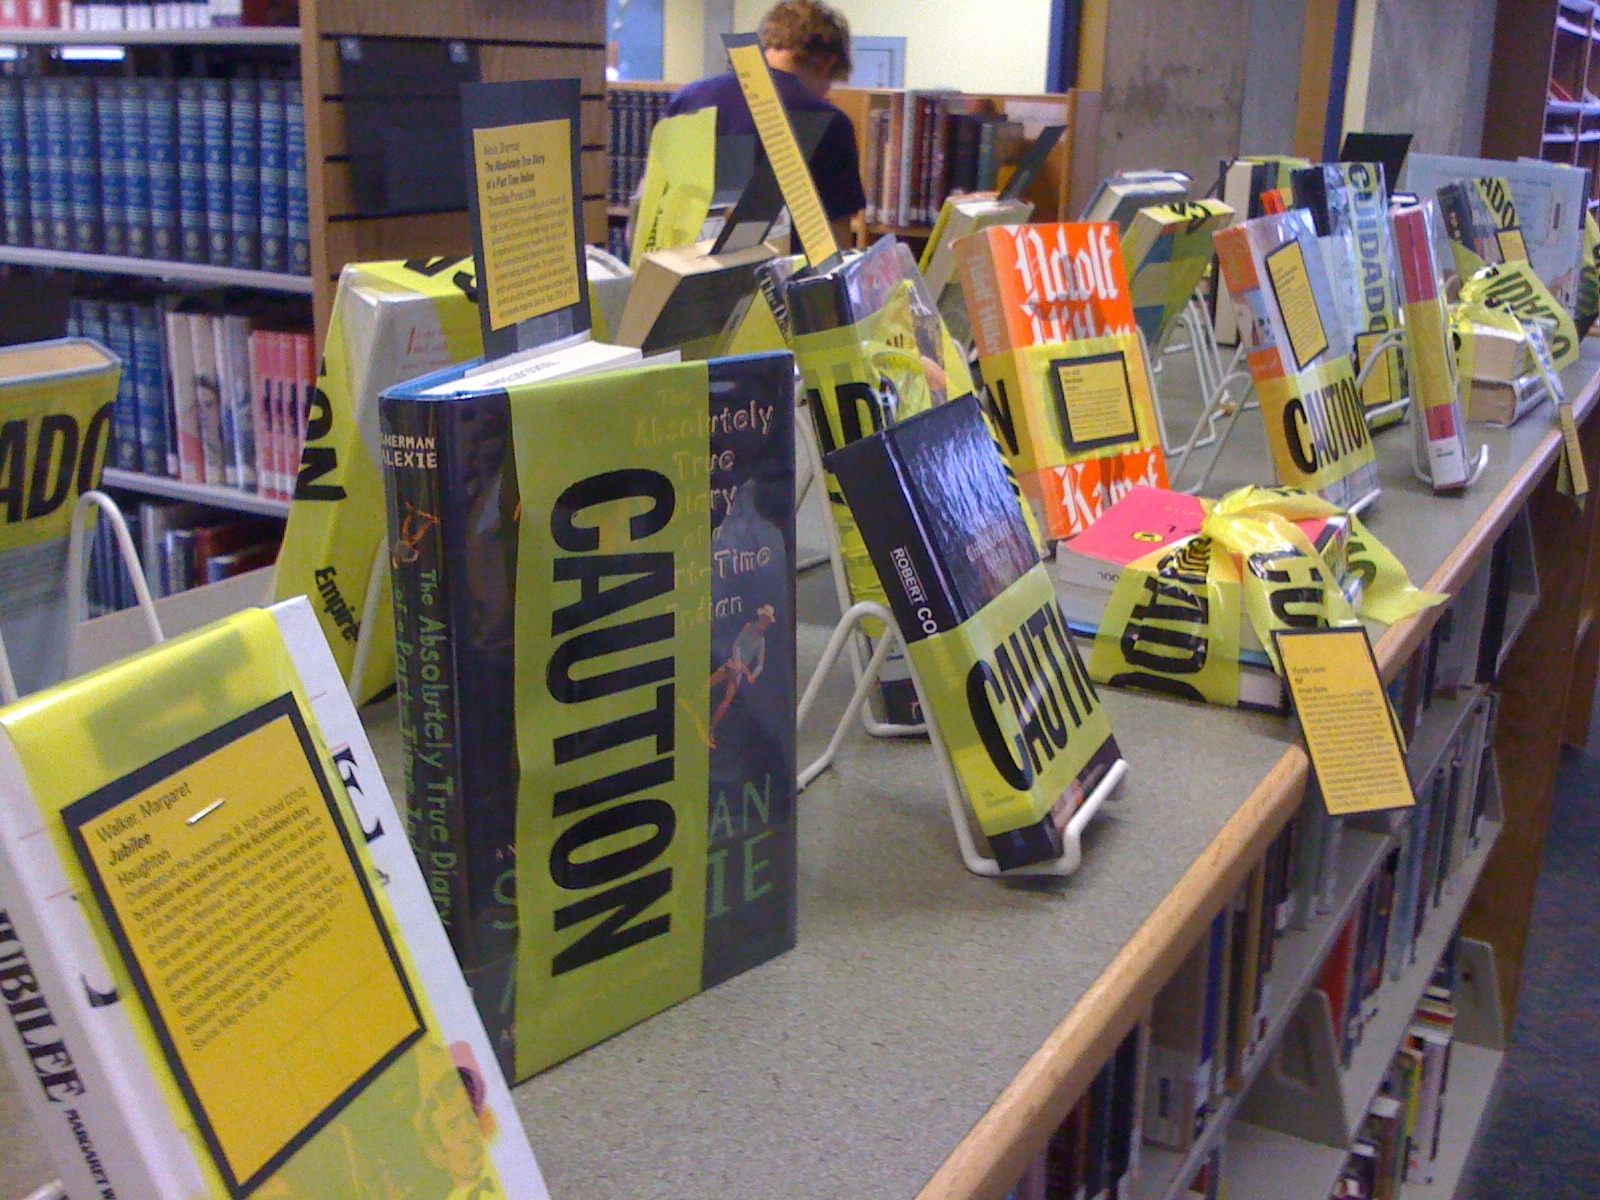 A photograph of a library display featuring books covered in police caution tape.